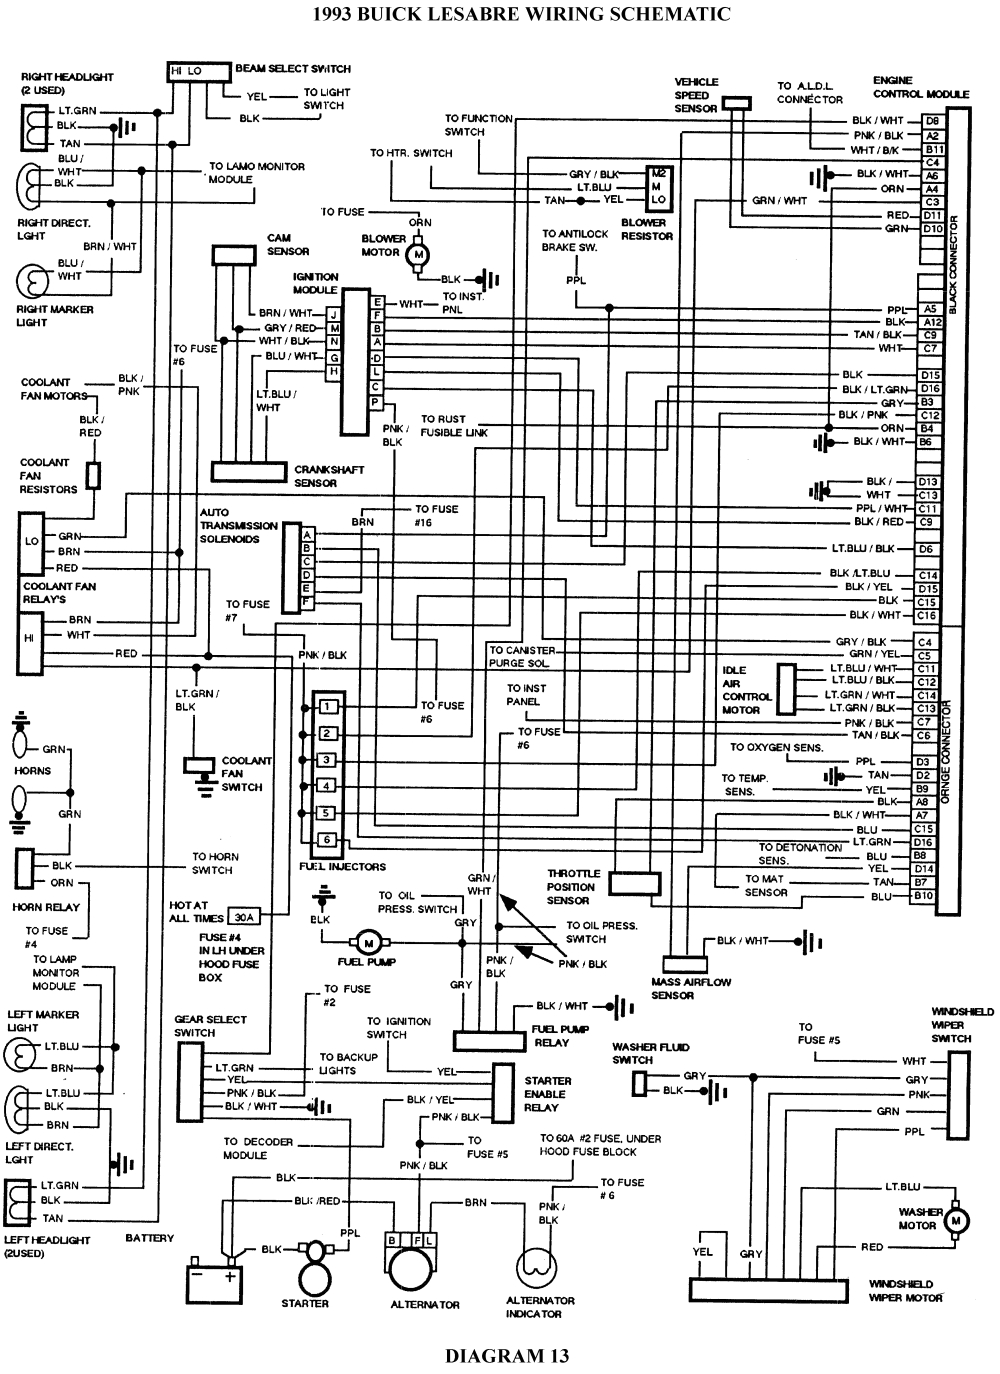 guides wiring diagrams 10 of 34 autozone free download c12 wiring diagram wiring diagram data  c12 wiring diagram wiring diagram data